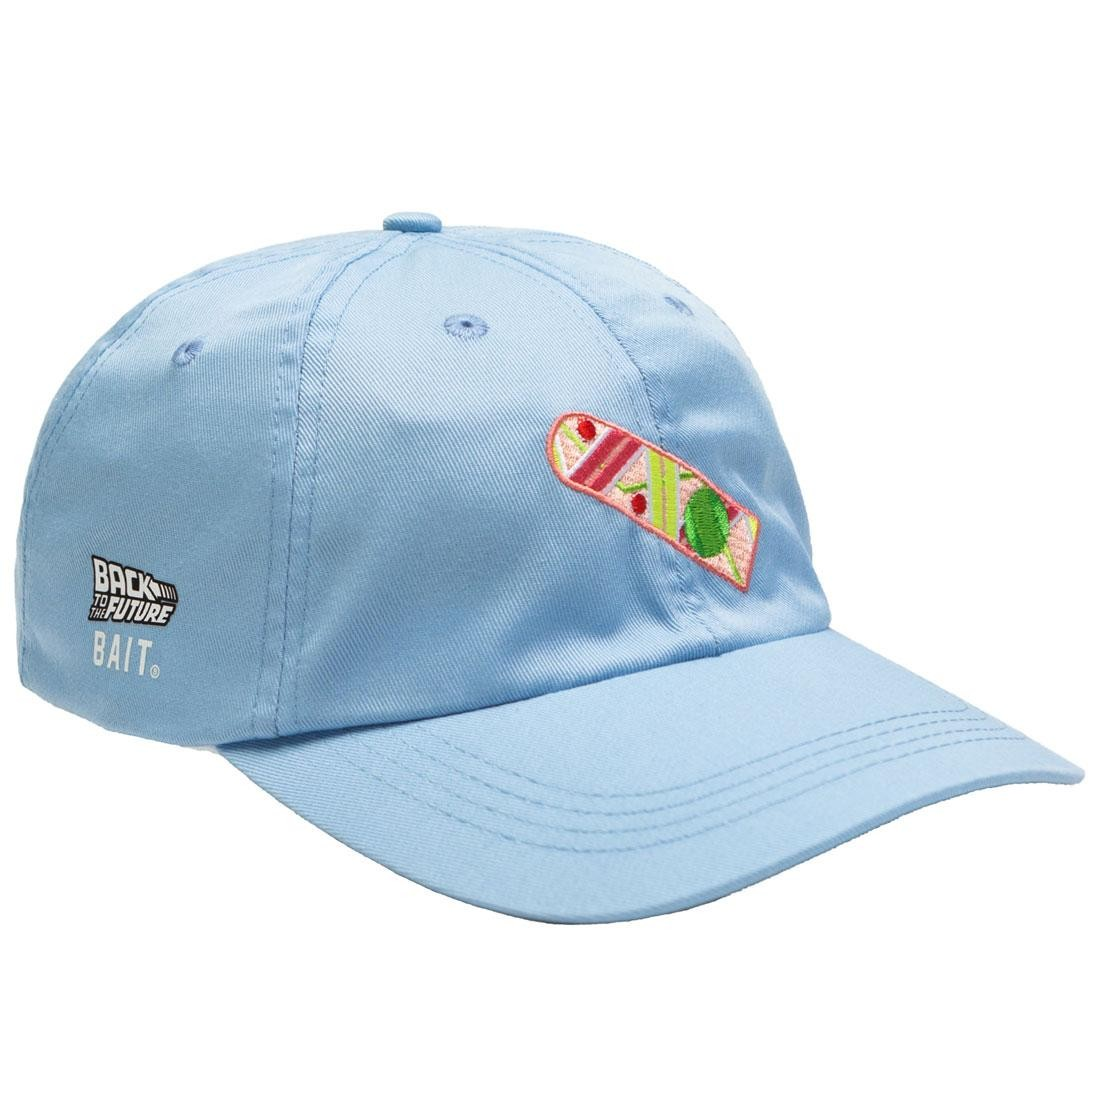 BAIT x Back To The Future Hoverboard Dad Cap (light blue)